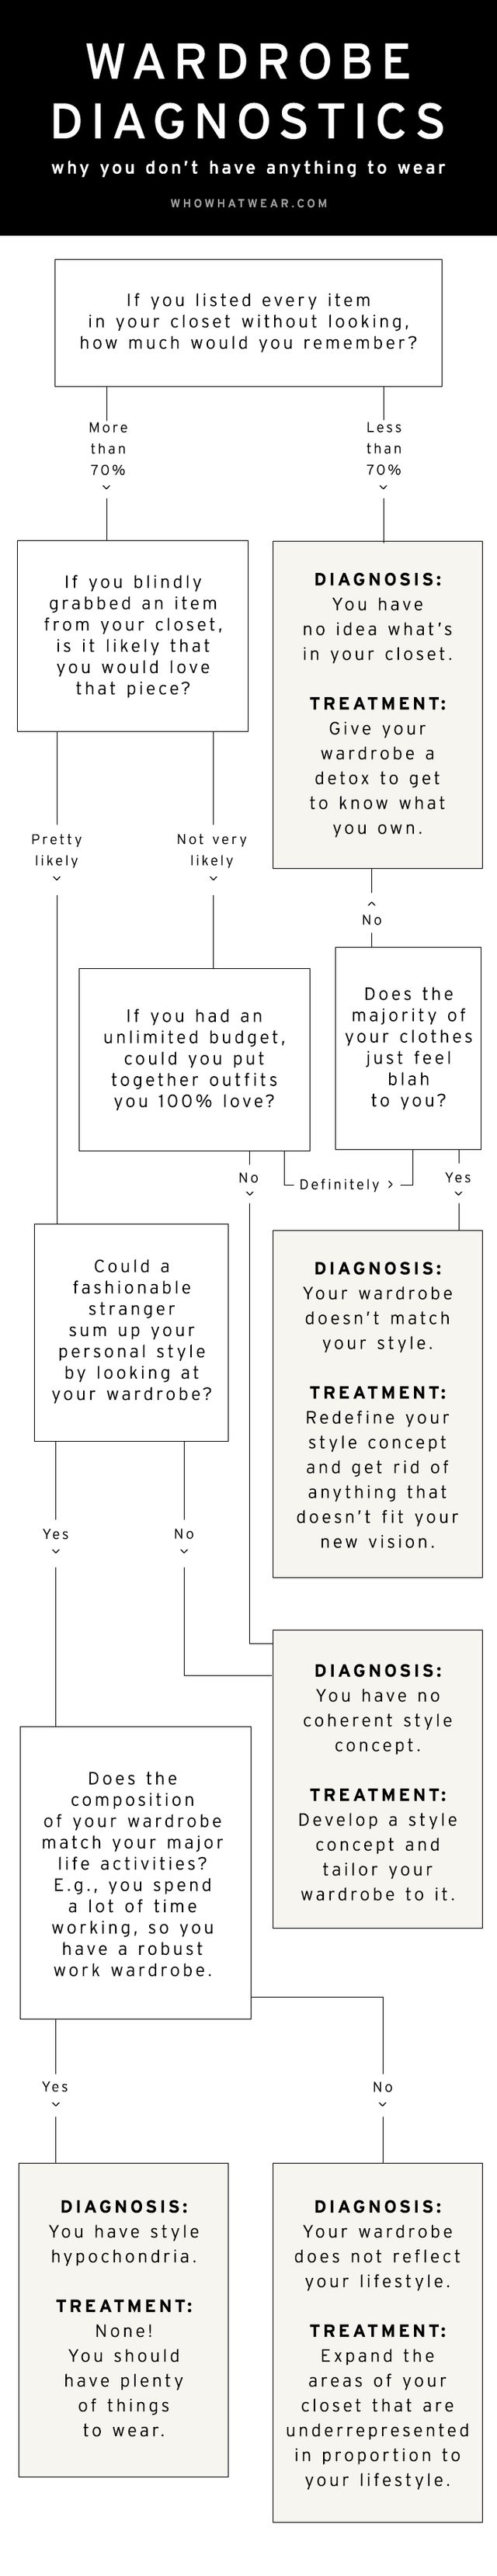 Once you have your result, head to Into Mind for resources that will helpwhip your wardrobe into shape.